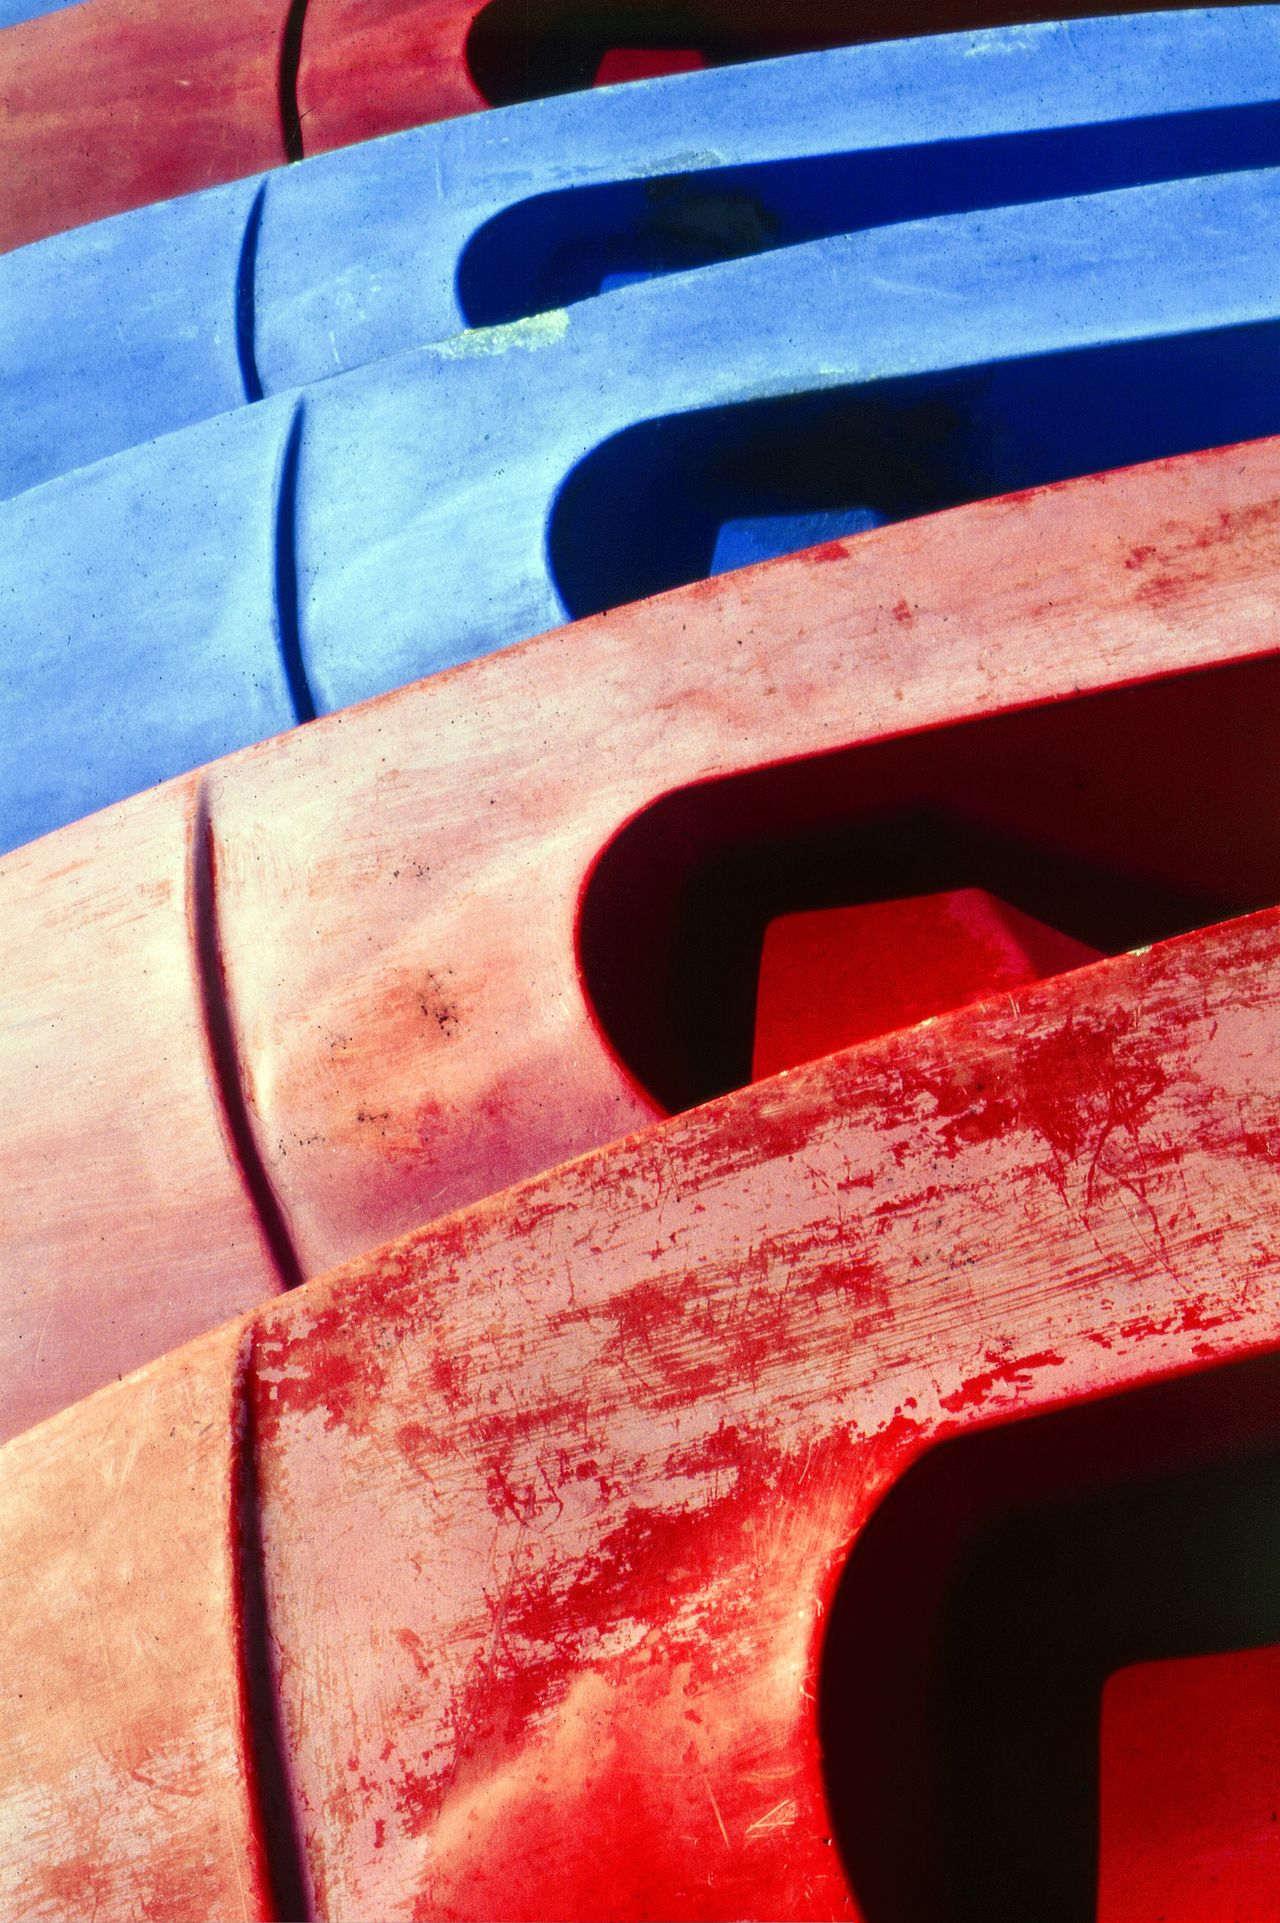 Stacked Canoes, Loutro, Crete, Greece Abstract Photography Blue Canoe Canoes Close-up Colour Colourful Crete Greece Day Fibreglass Flaking Paint Graphic My Point Of View My Style No People Nobody Outdoors Red Shadow Sunlight Textures And Surfaces Travel Photography Vertical